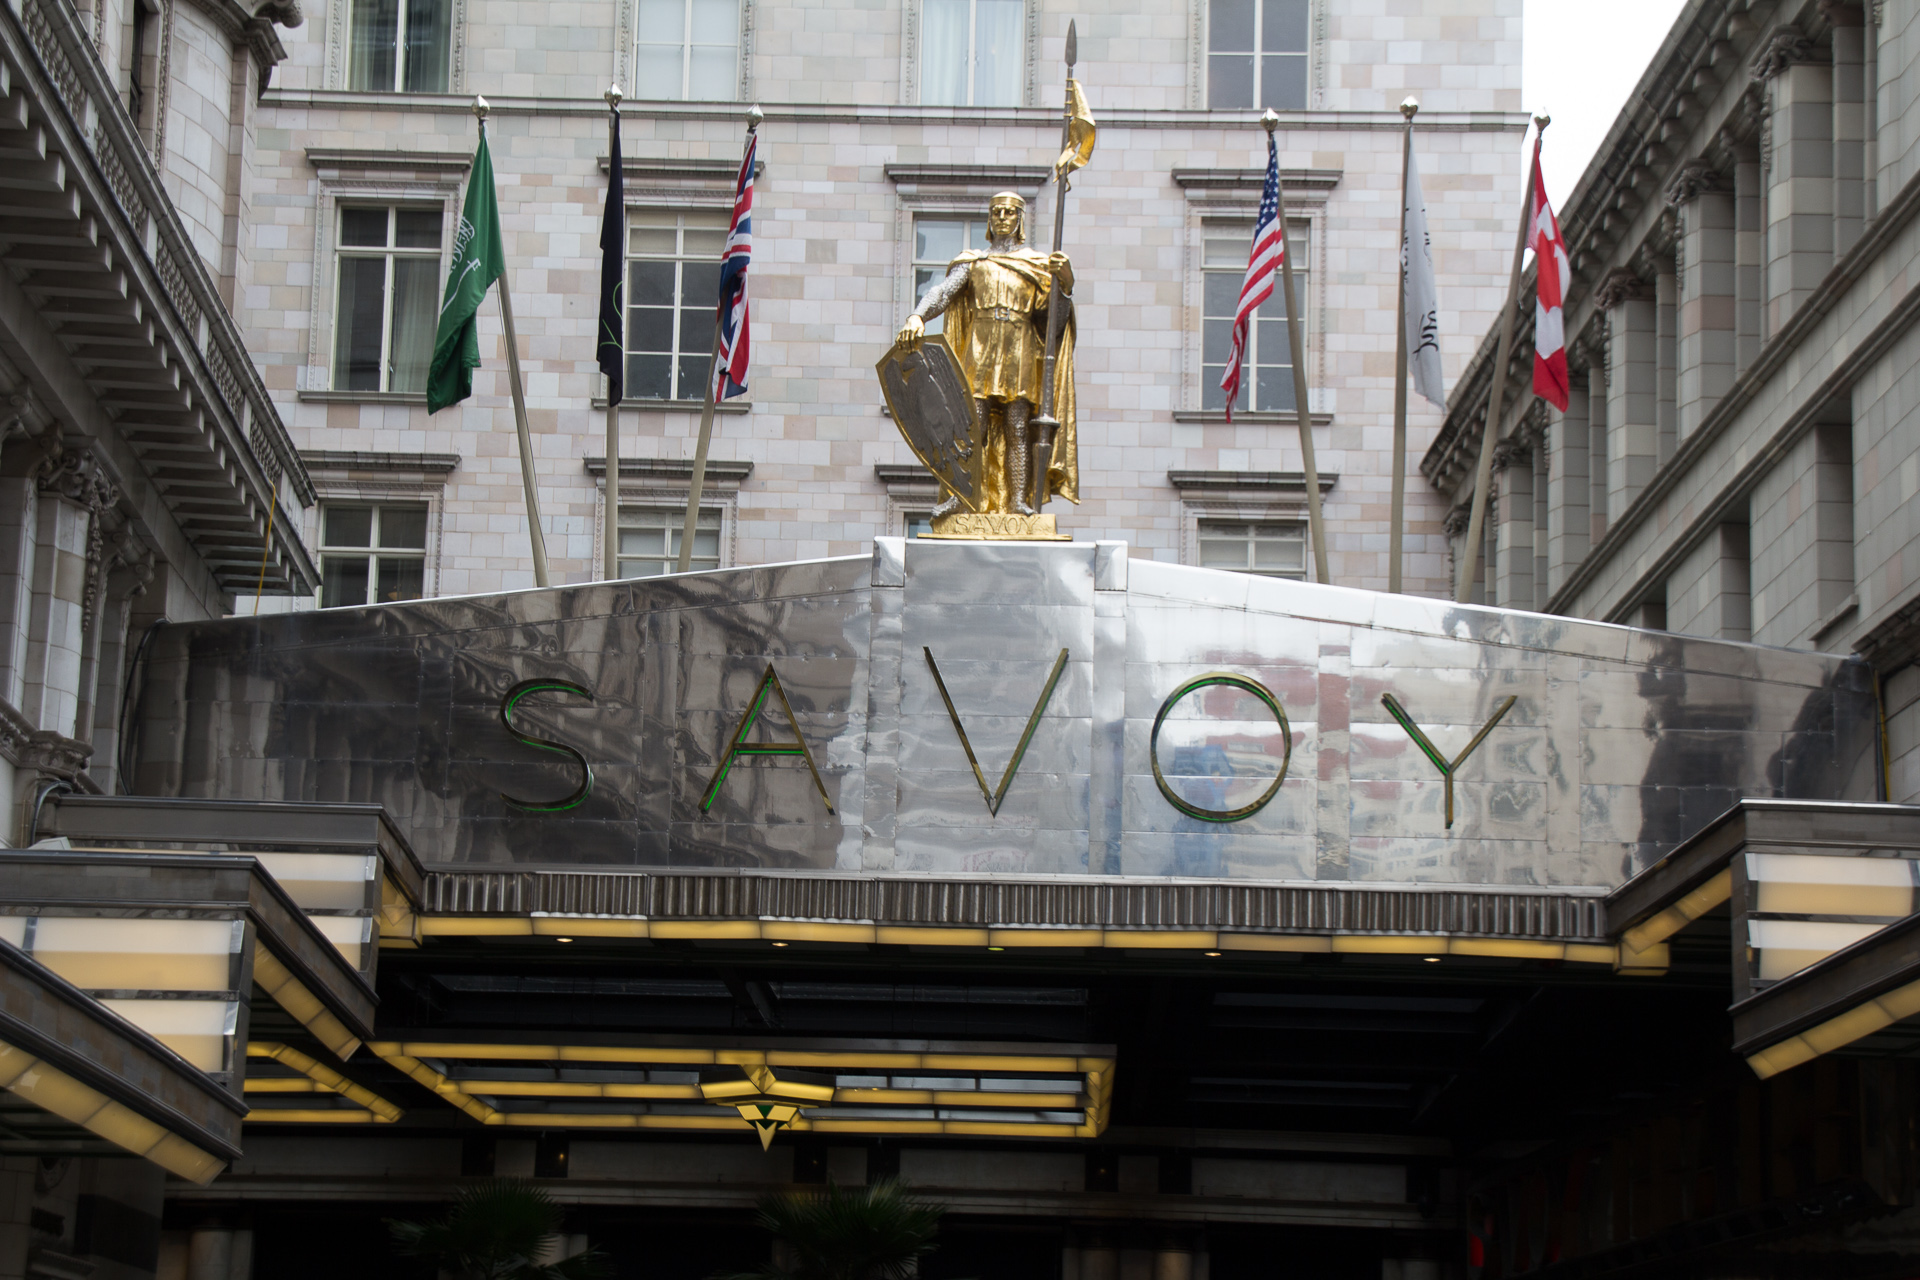 Trip Report – RTW – Part 6: London Day 3 – The Savoy